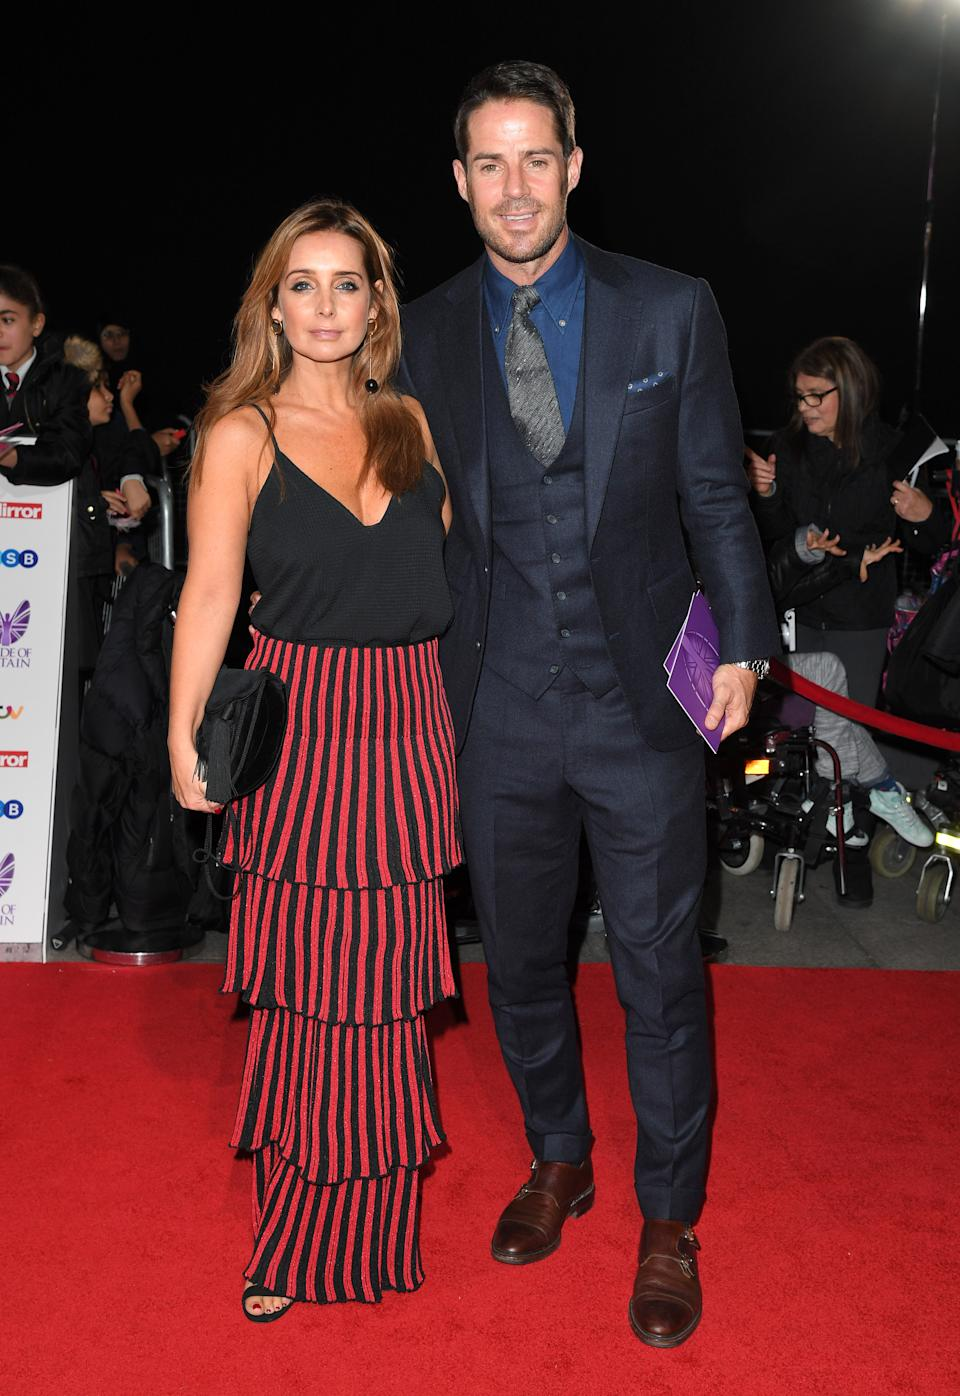 LONDON, ENGLAND - OCTOBER 31:  Louise Redknapp and Jamie Redknapp attend the Pride Of Britain Awards at The Grosvenor House Hotel on October 31, 2016 in London, England.  (Photo by Karwai Tang/WireImage)